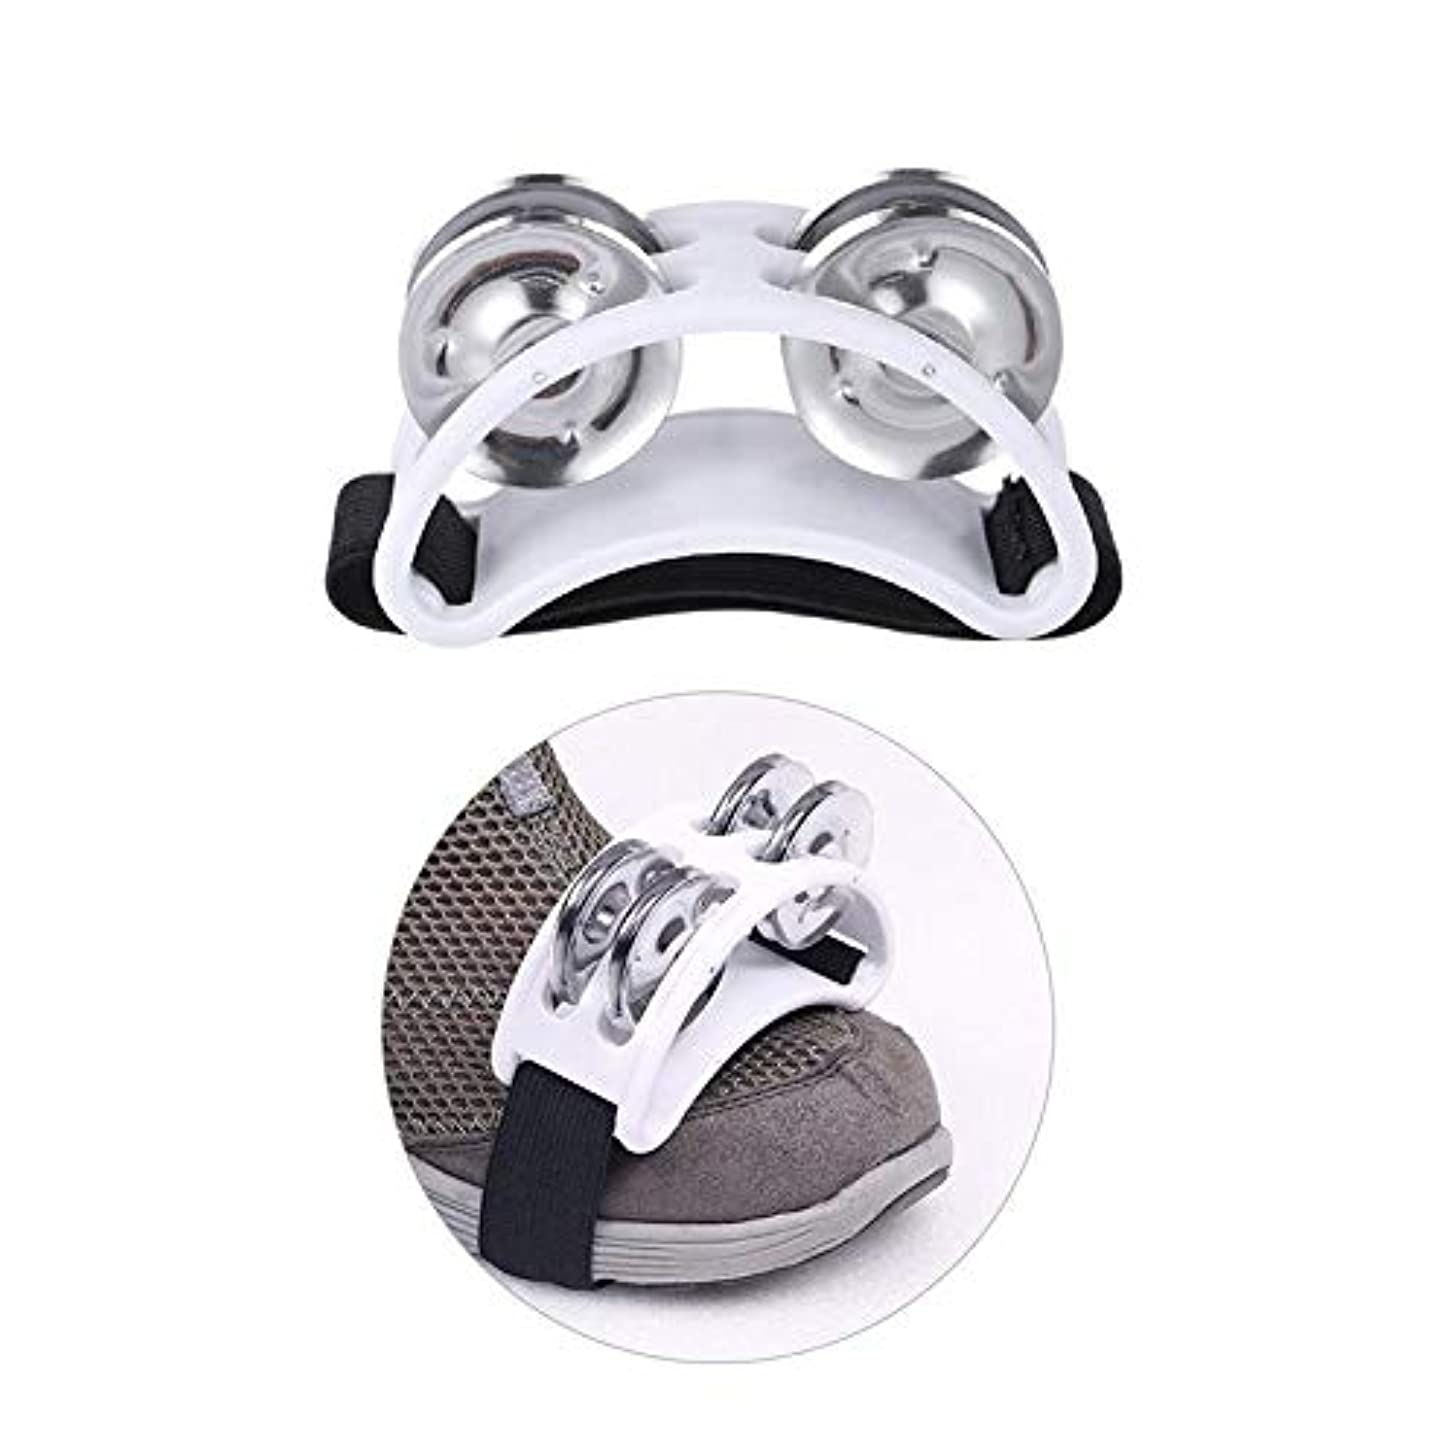 Foot Tambourine With Double Jingle Bell Percussion Musical Instrument Drums (White)